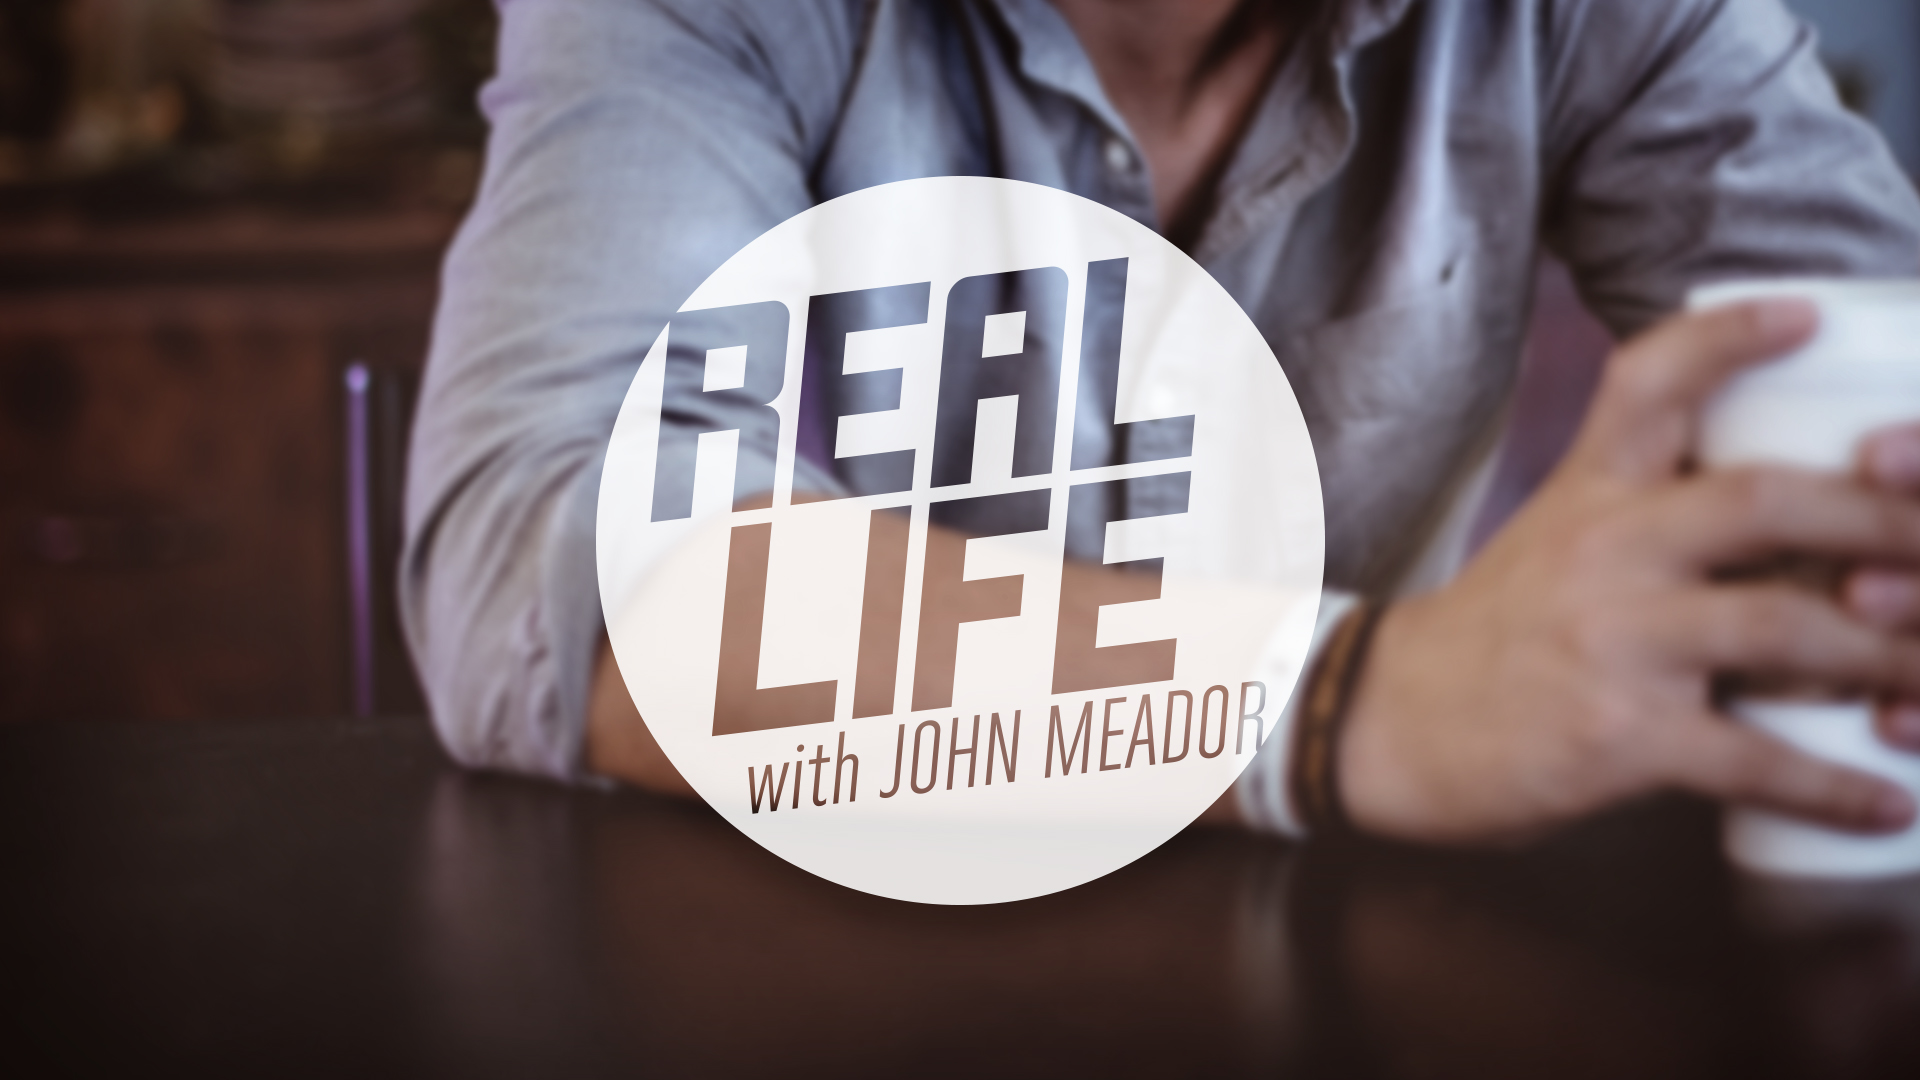 Real Life with John Meador